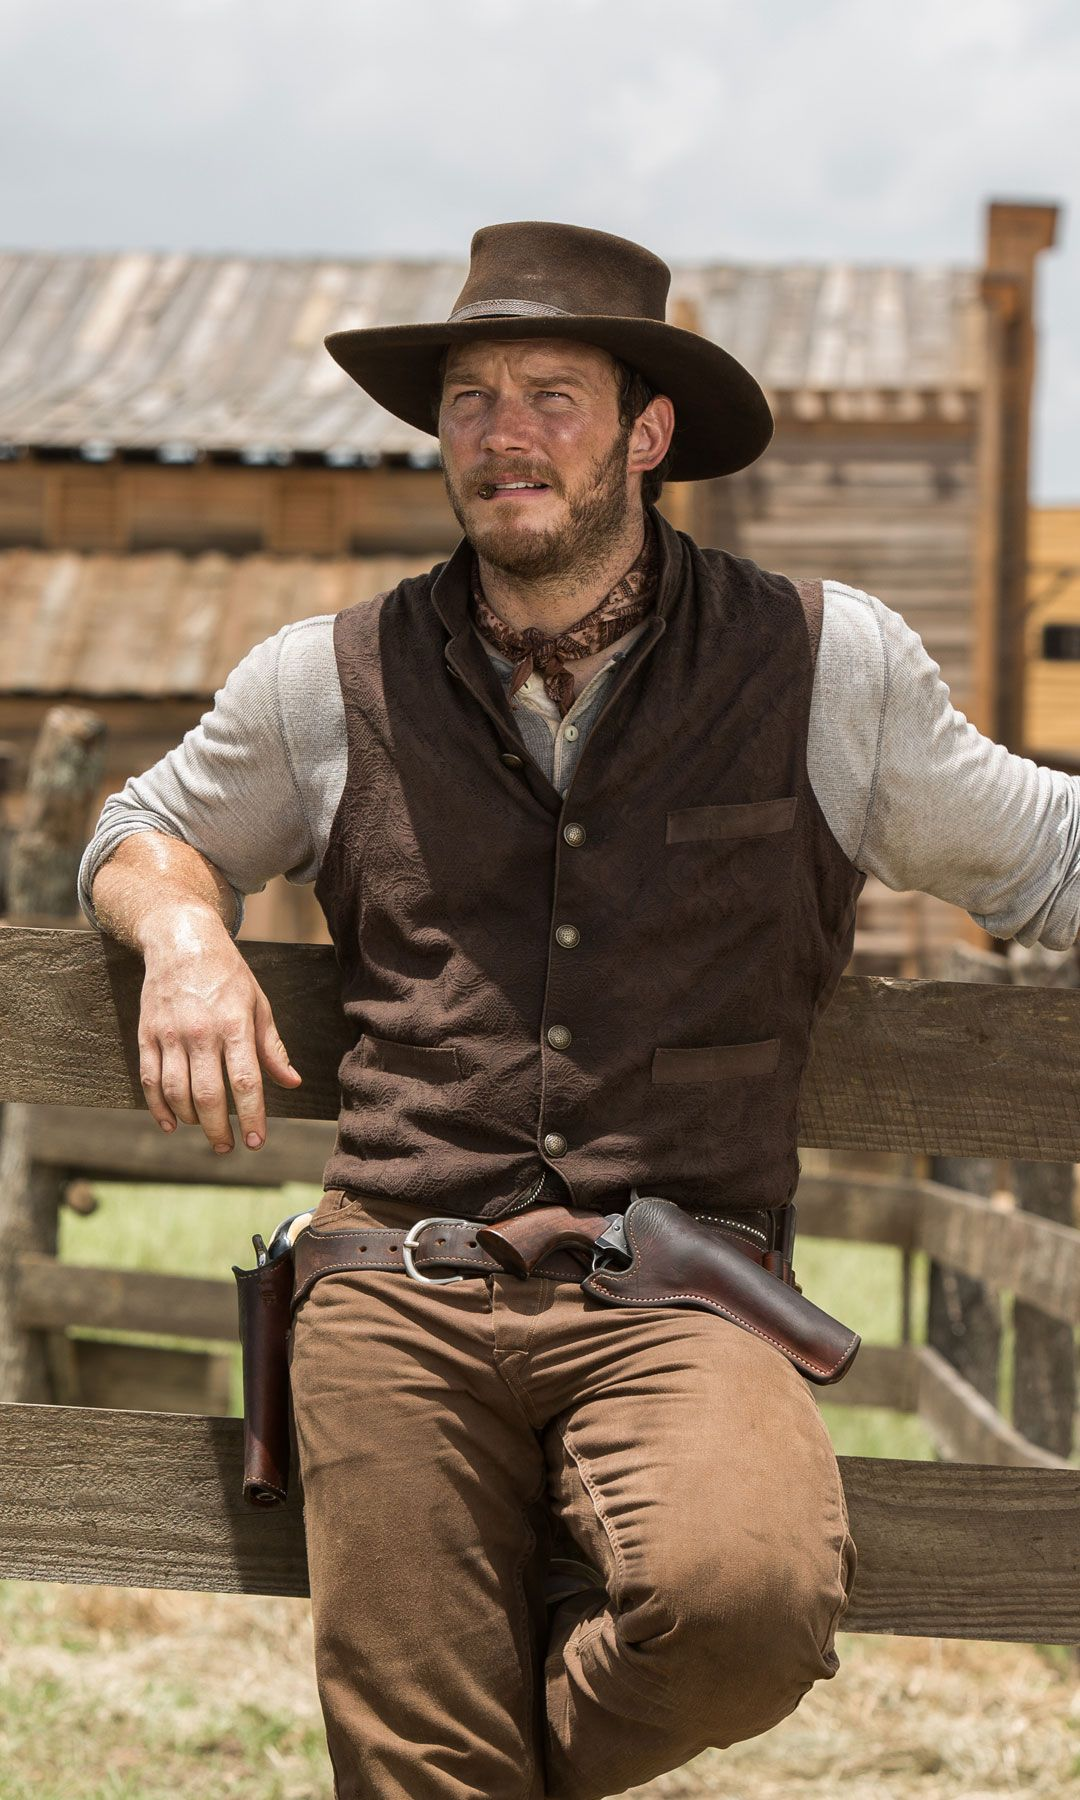 Chris Pratt and Denzel Washington Are the Action Duo You Never Knew You Needed in The Magnificent Seven Trailer